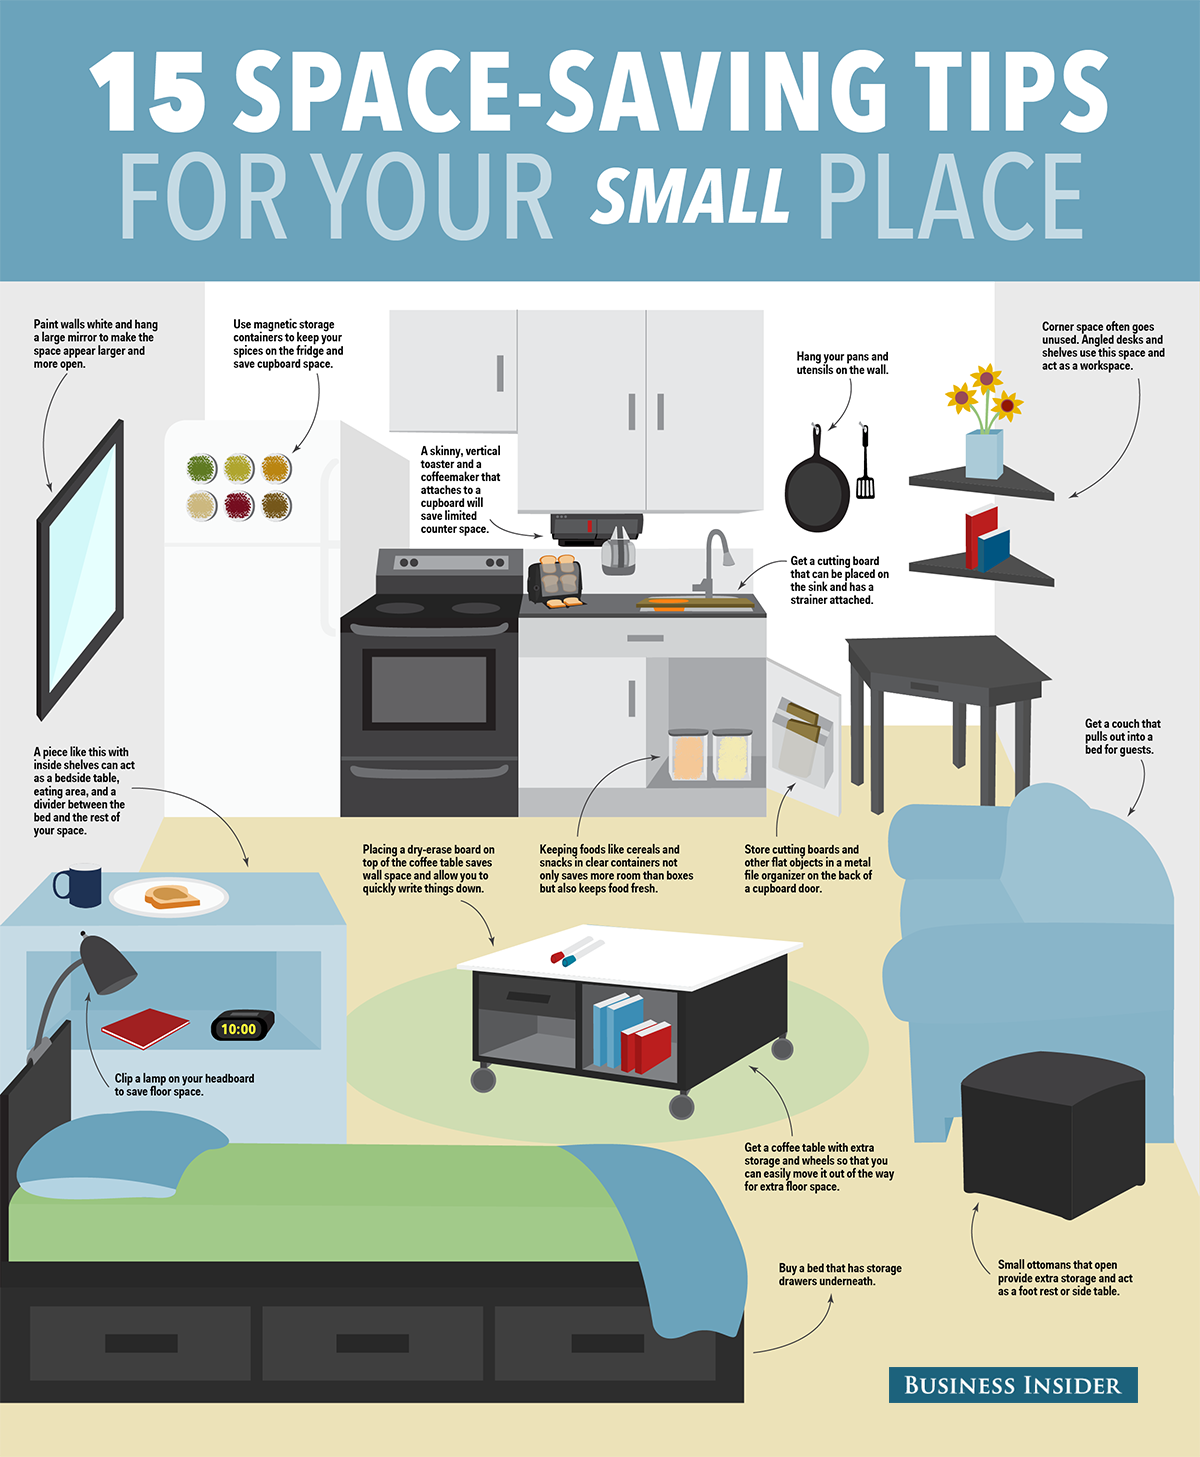 15 ways to save space in your small apartment ideas for 21289 | 5546fee900e95070b4603b229f1213d5